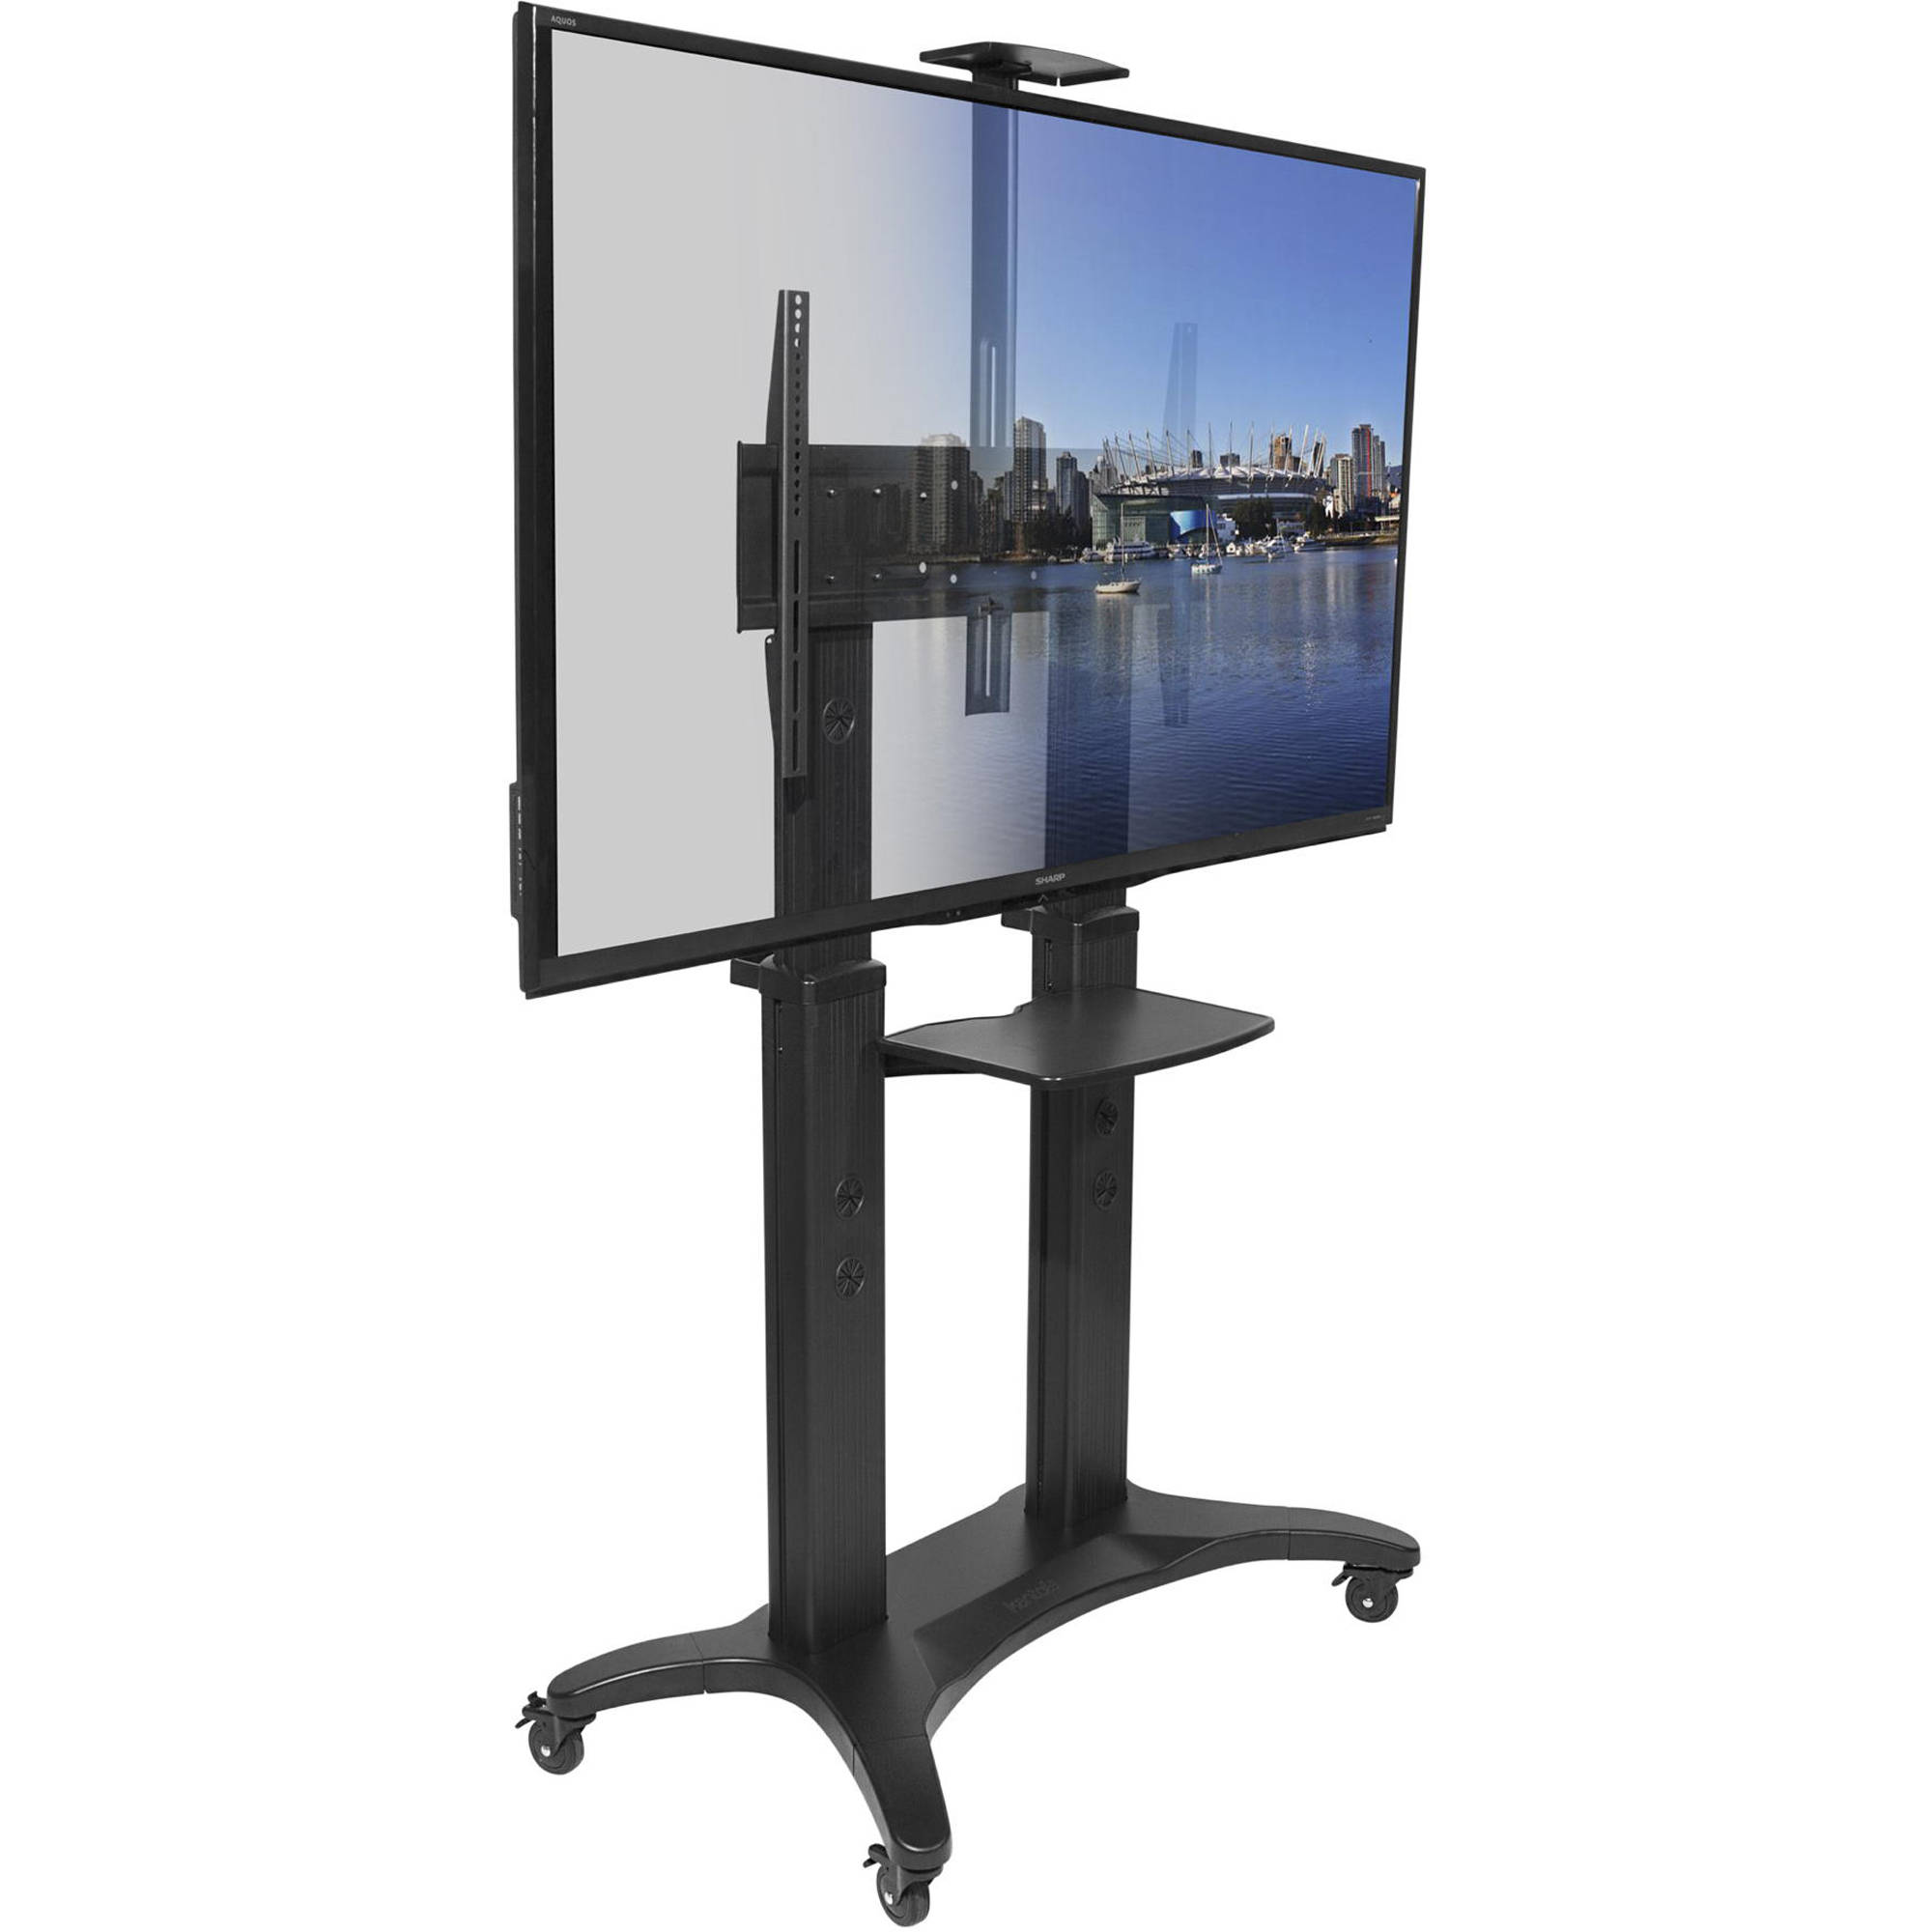 monitor not included - Tv Mount